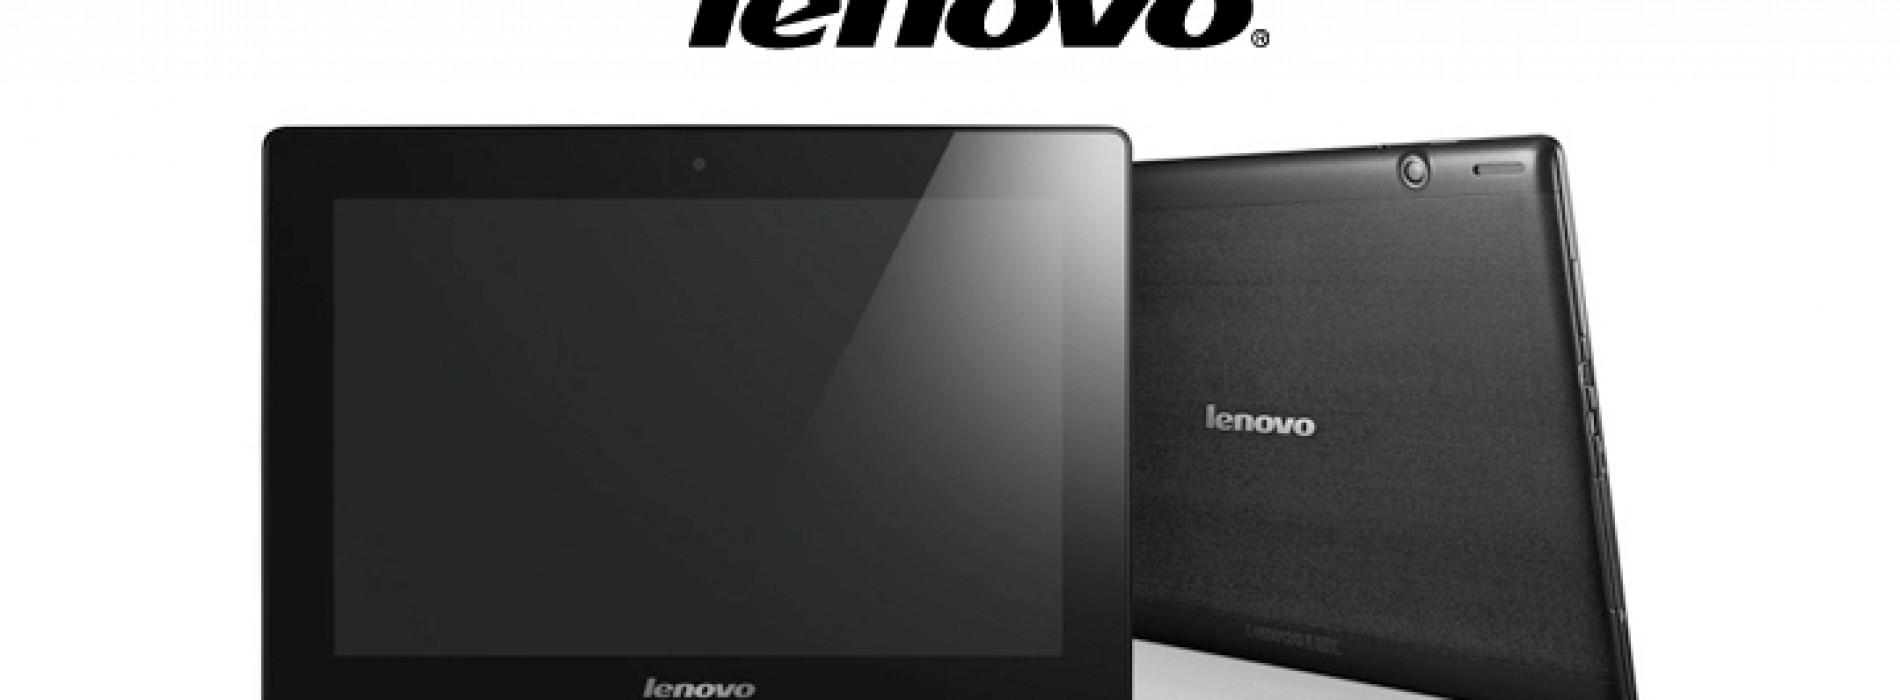 Lenovo announces trio of Android tablets for Q2